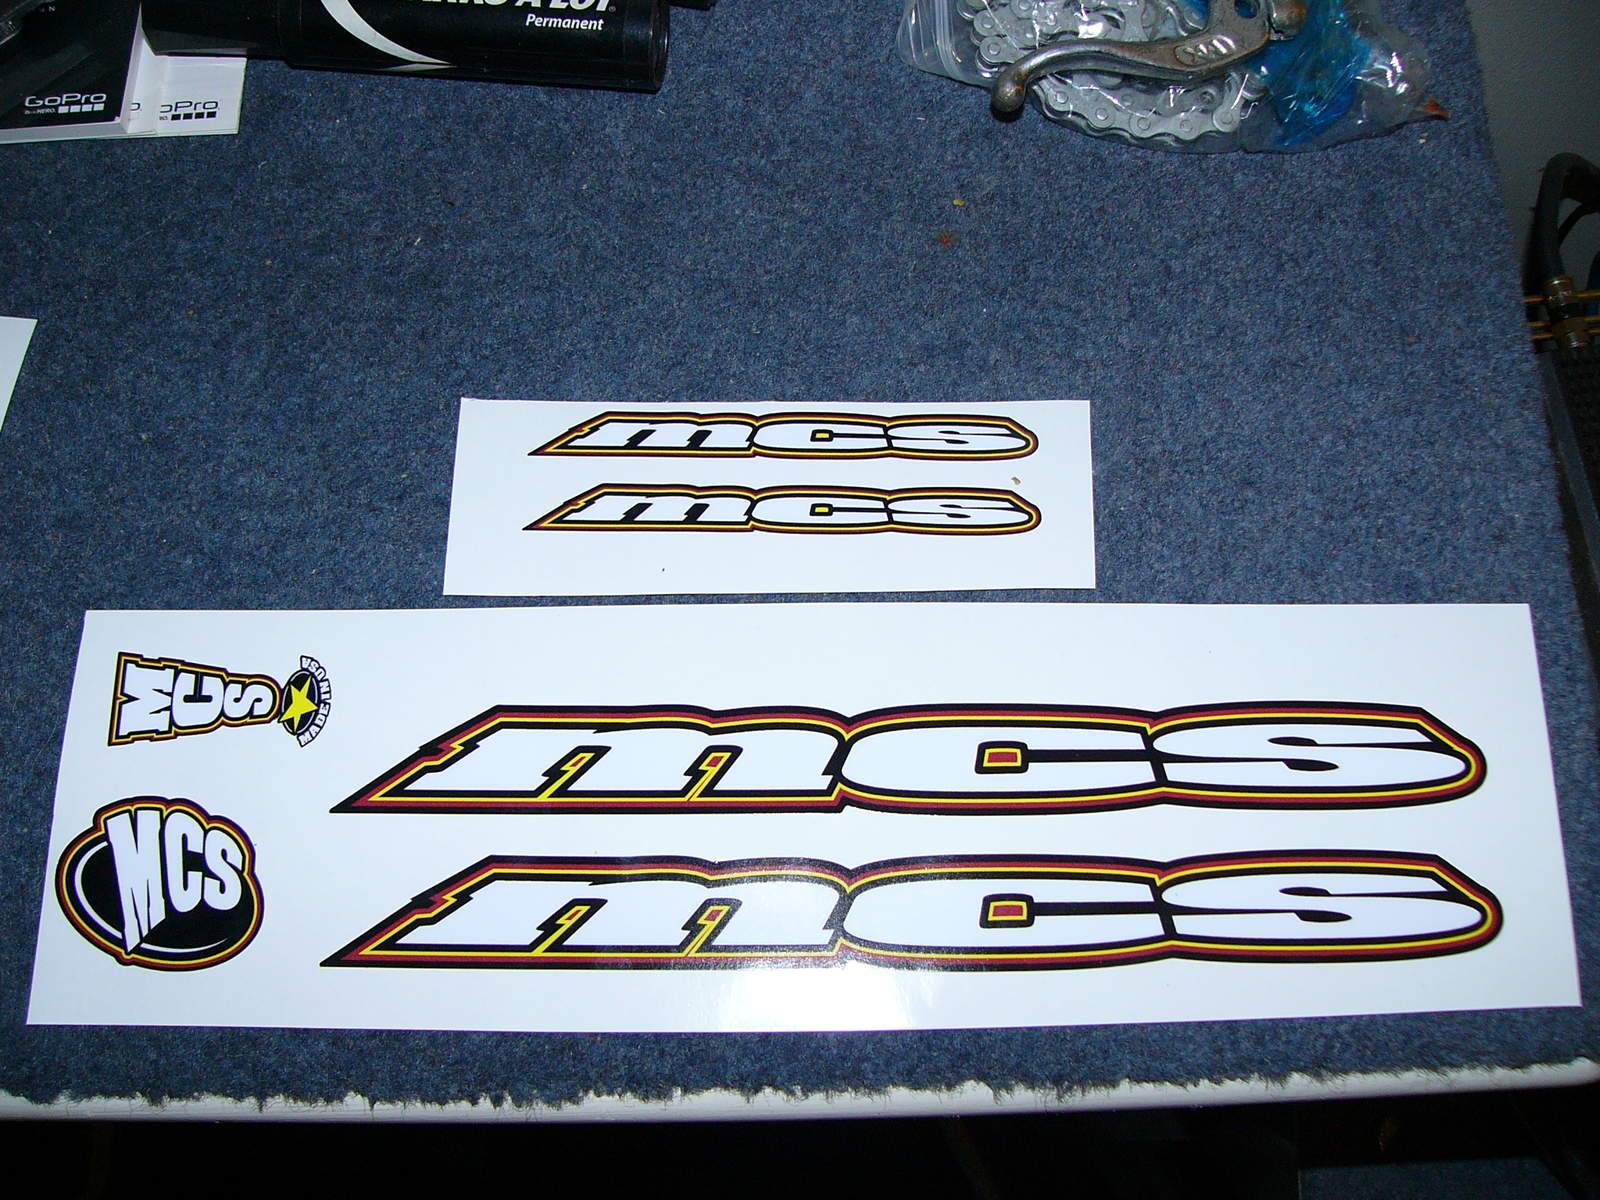 http://uploads.bmxmuseum.com/user-images/3254/mcs-decals-a59fdafc2ea.jpg